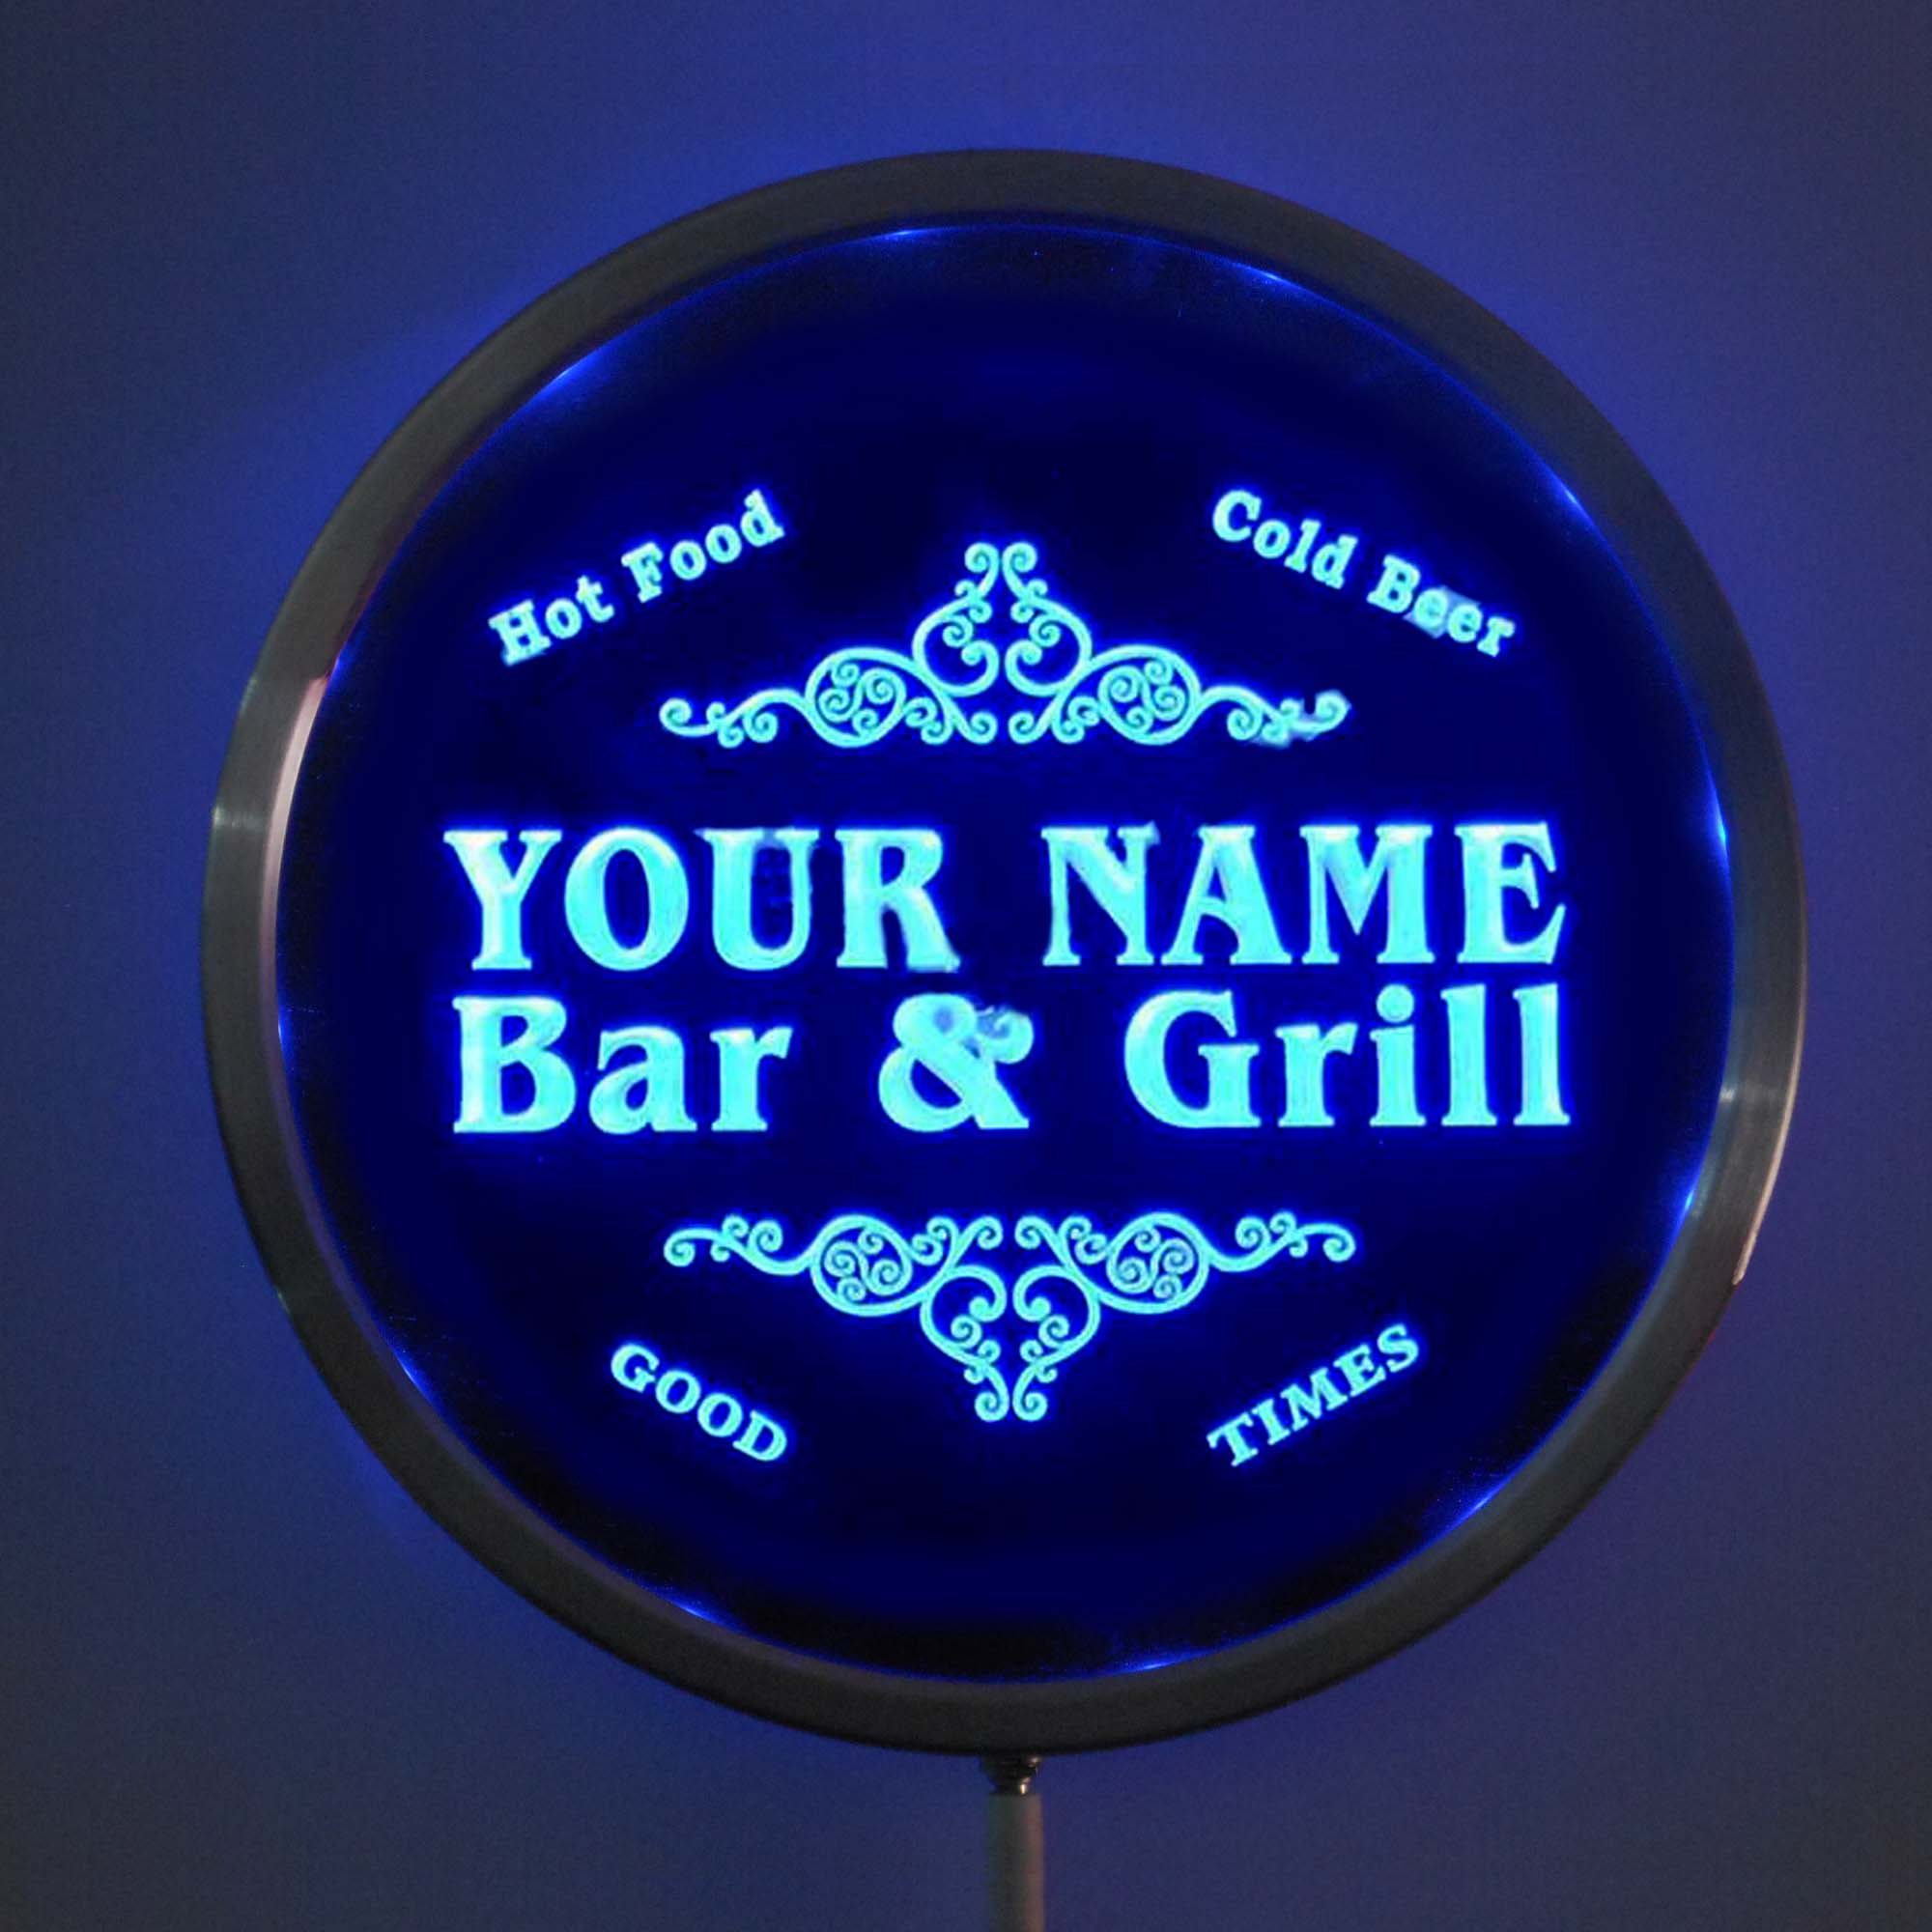 rs-u-tm Custom LED Neon Round Signs 25cm/ 10 Inch - Personalized Bar & Grill Sign RGB Multi-Color Remote Wireless Control